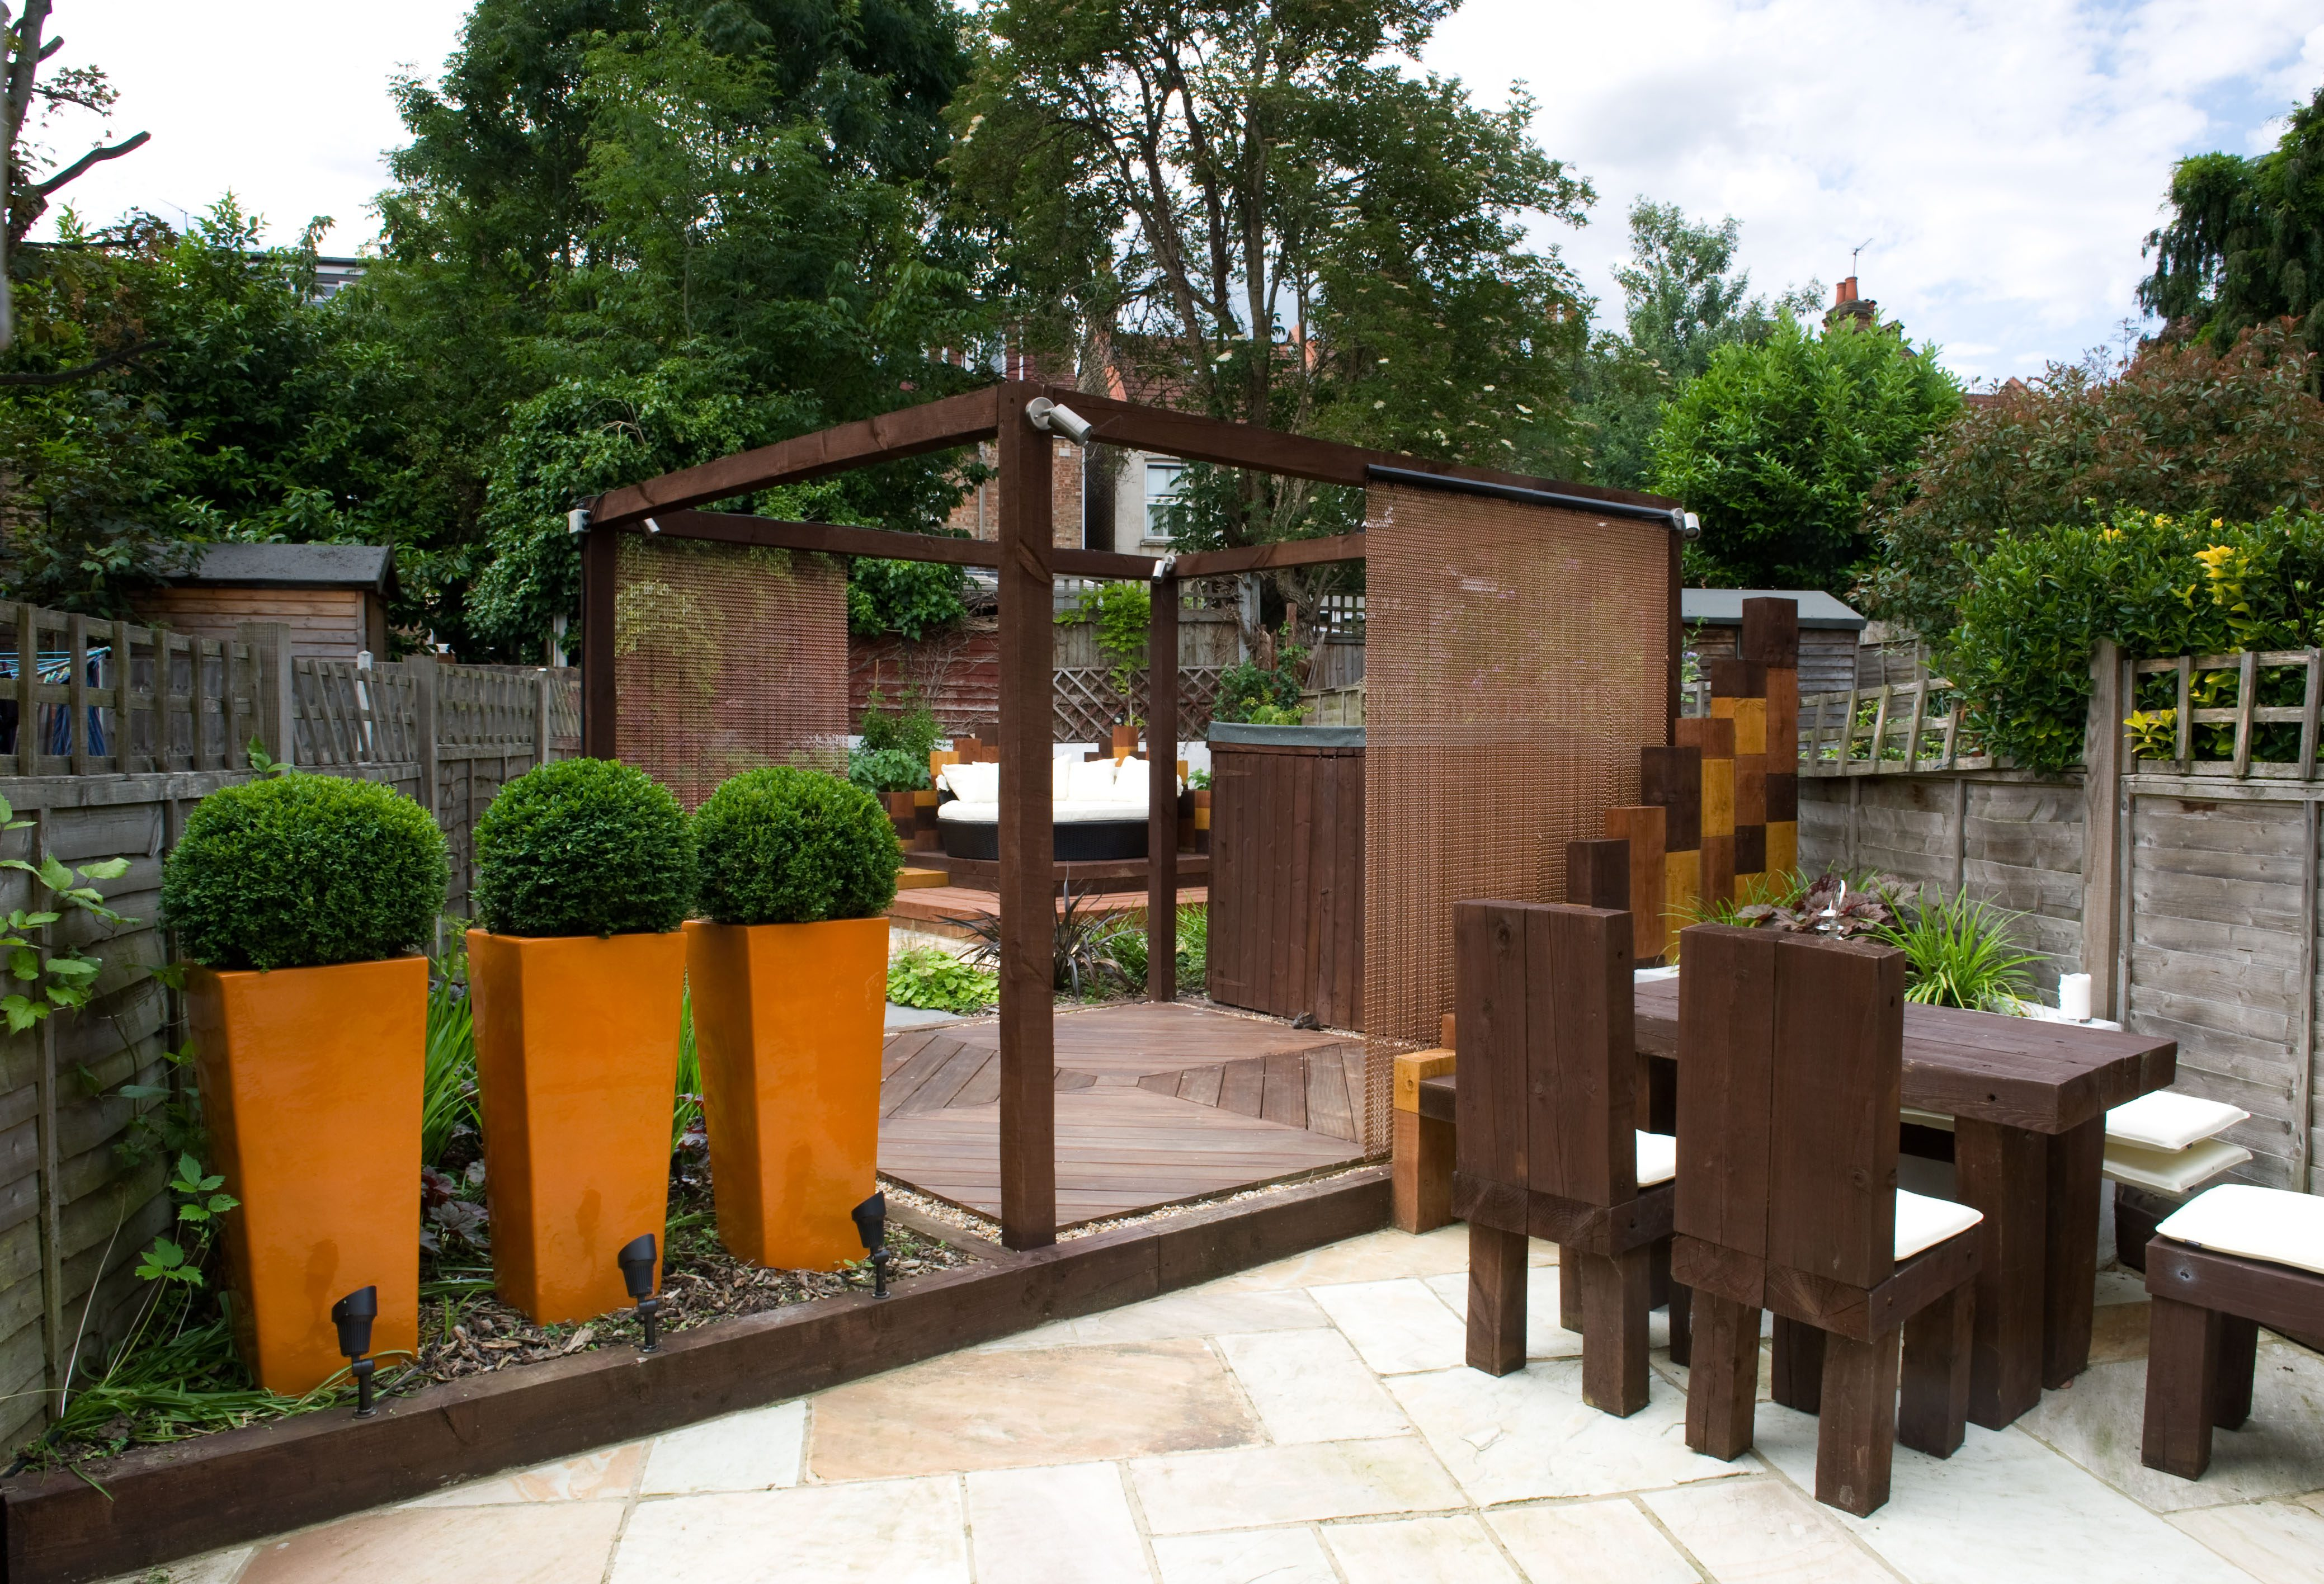 Big garden ideas, Small garden design space? - Creating ...